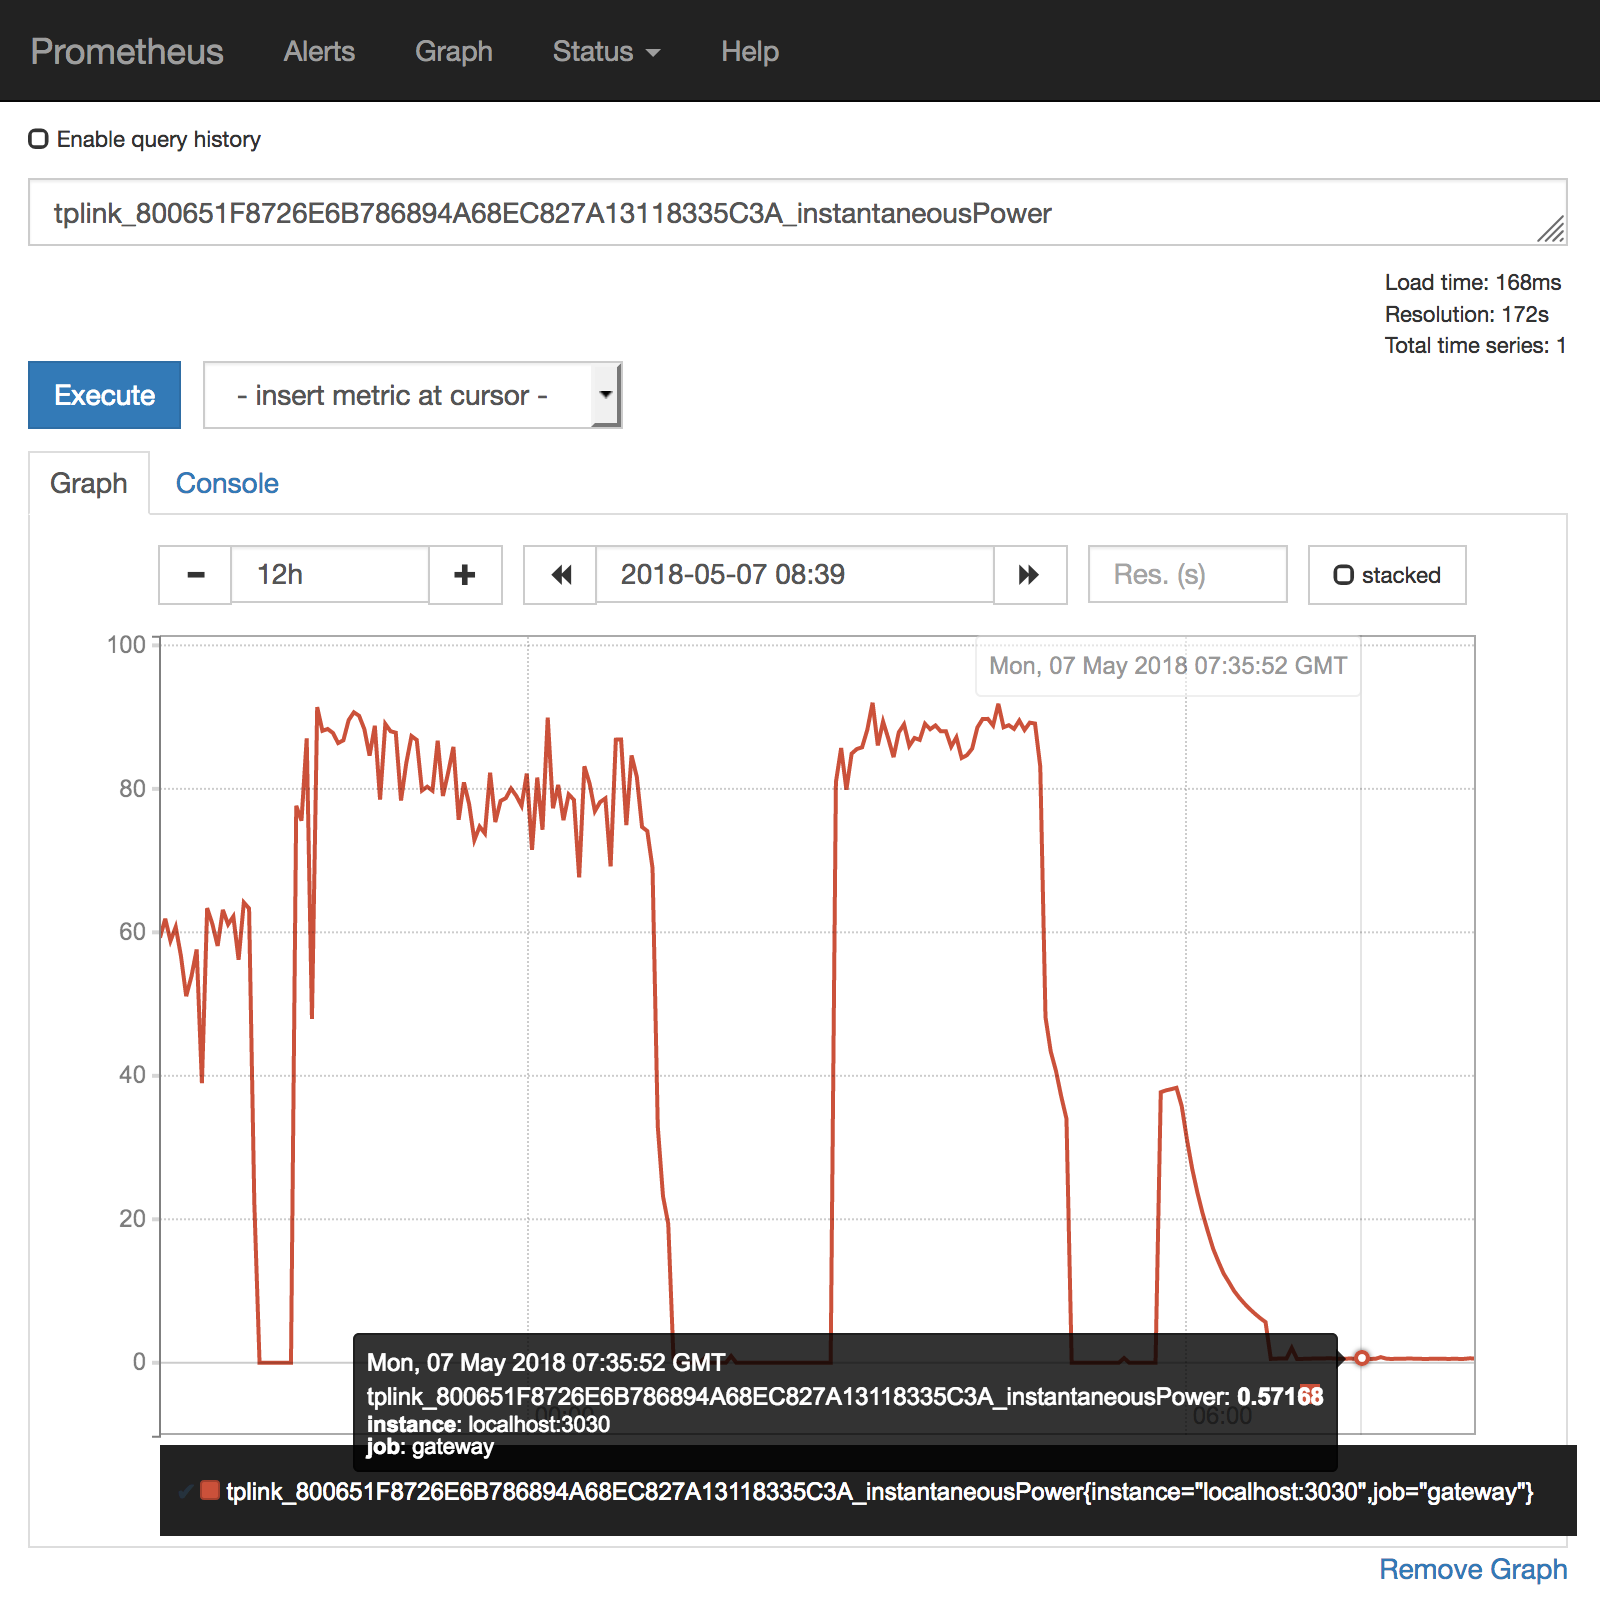 Visualizing Your Smart Home Data With The Web Of Things Mozilla To Set Time New Every For Electric Appliances Supervision As Graph Power Over A Highlight Specific Value